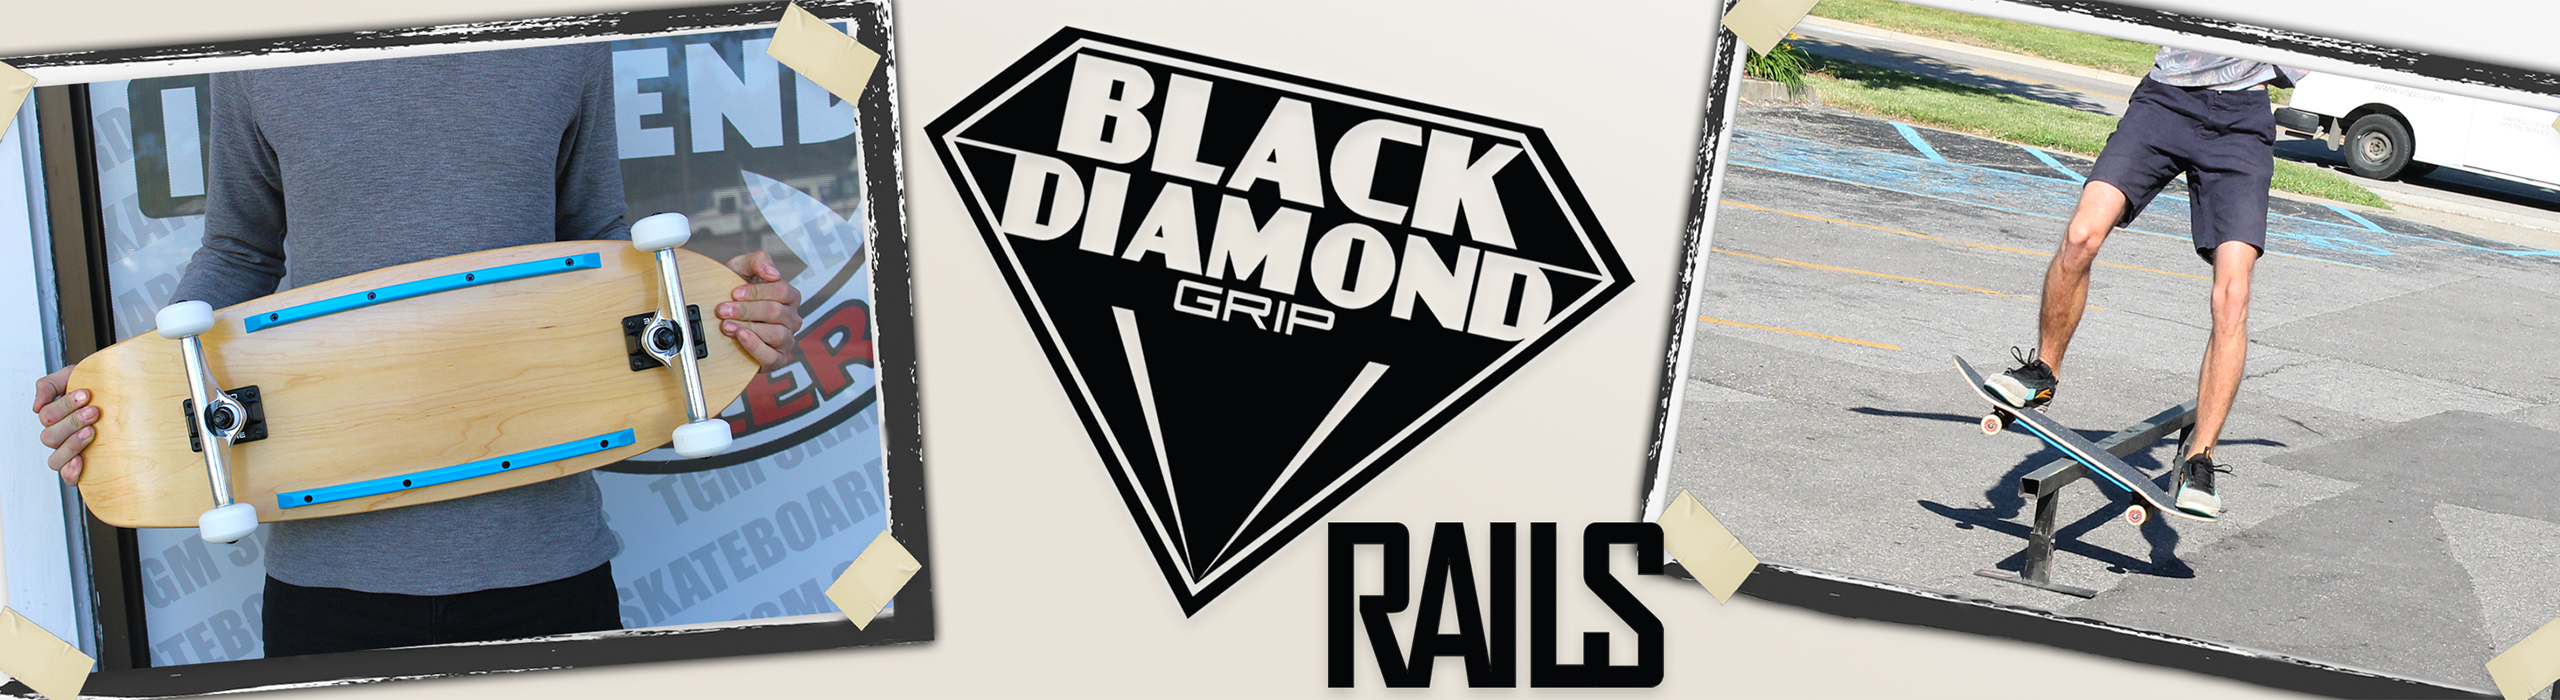 Black Diamond Rails for Skateboards & Old School Skateboards